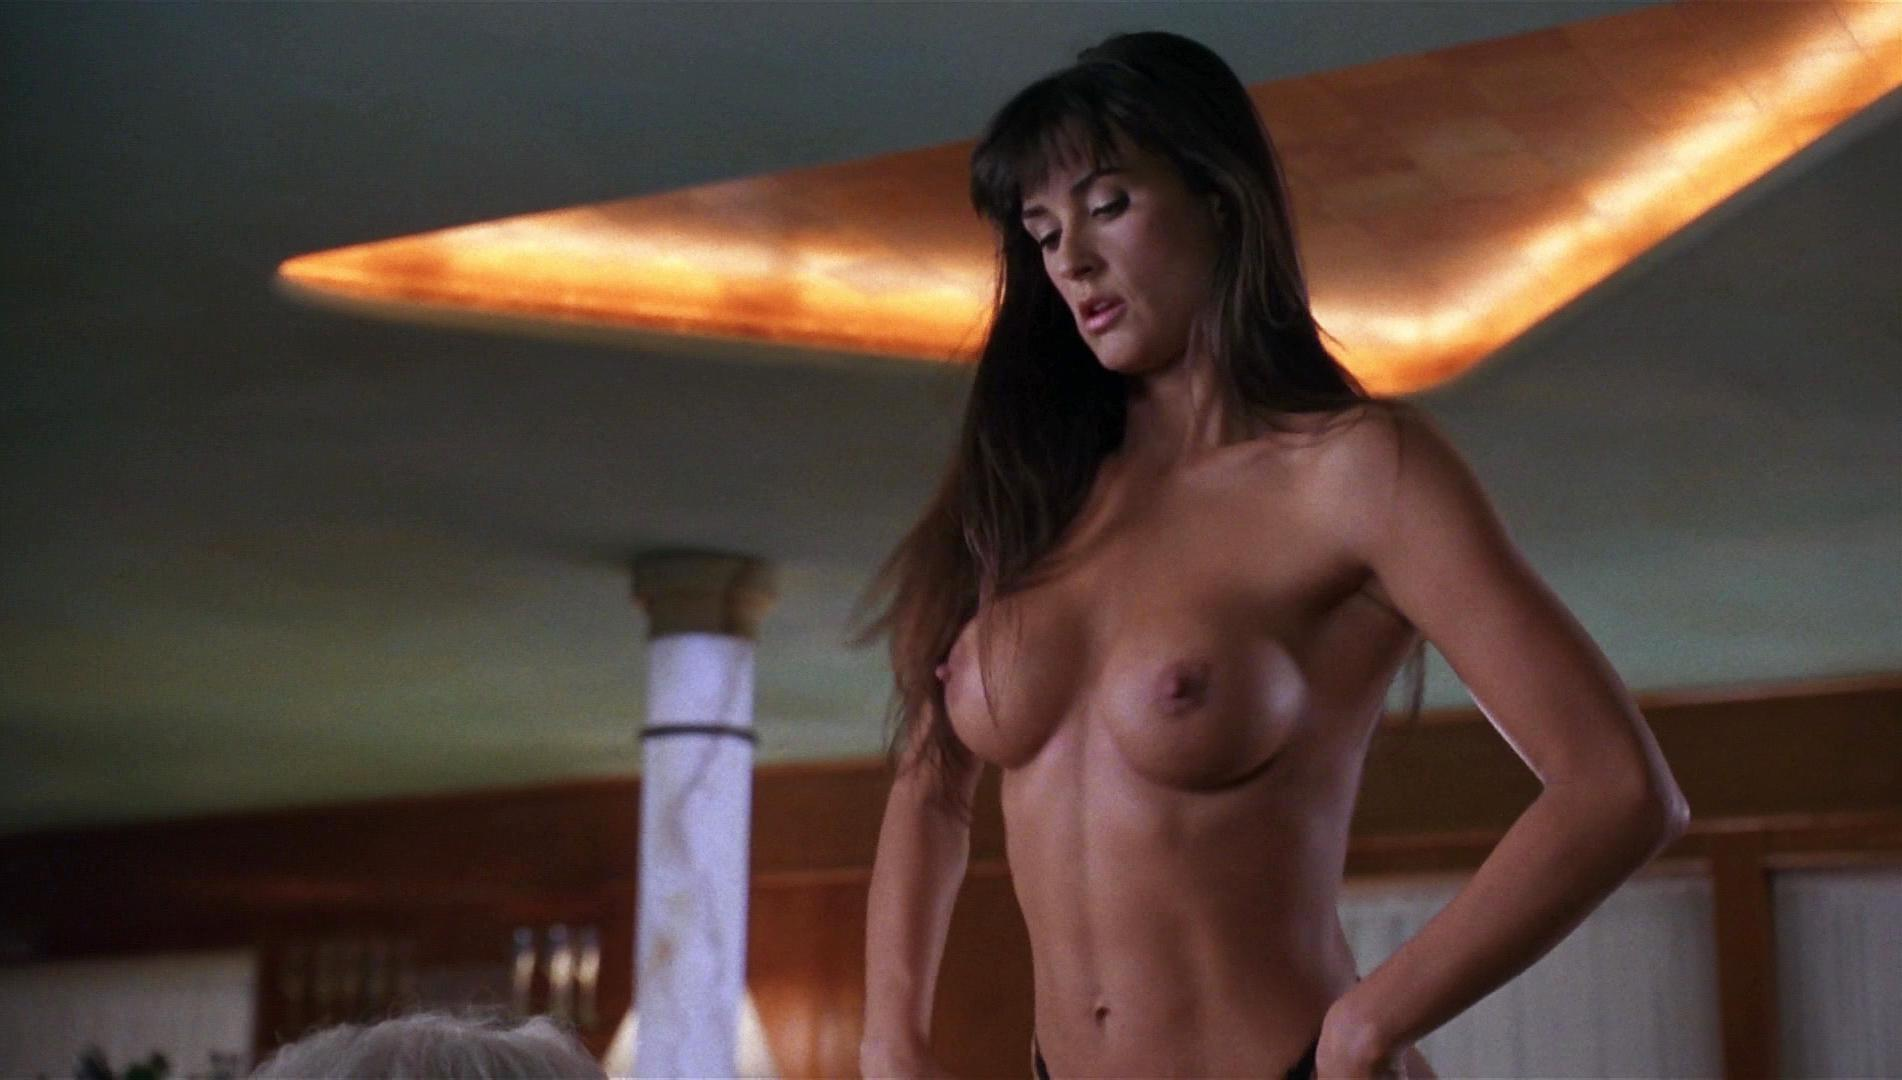 Nude Video Celebs  Demi Moore Nude - Striptease 1996-8283